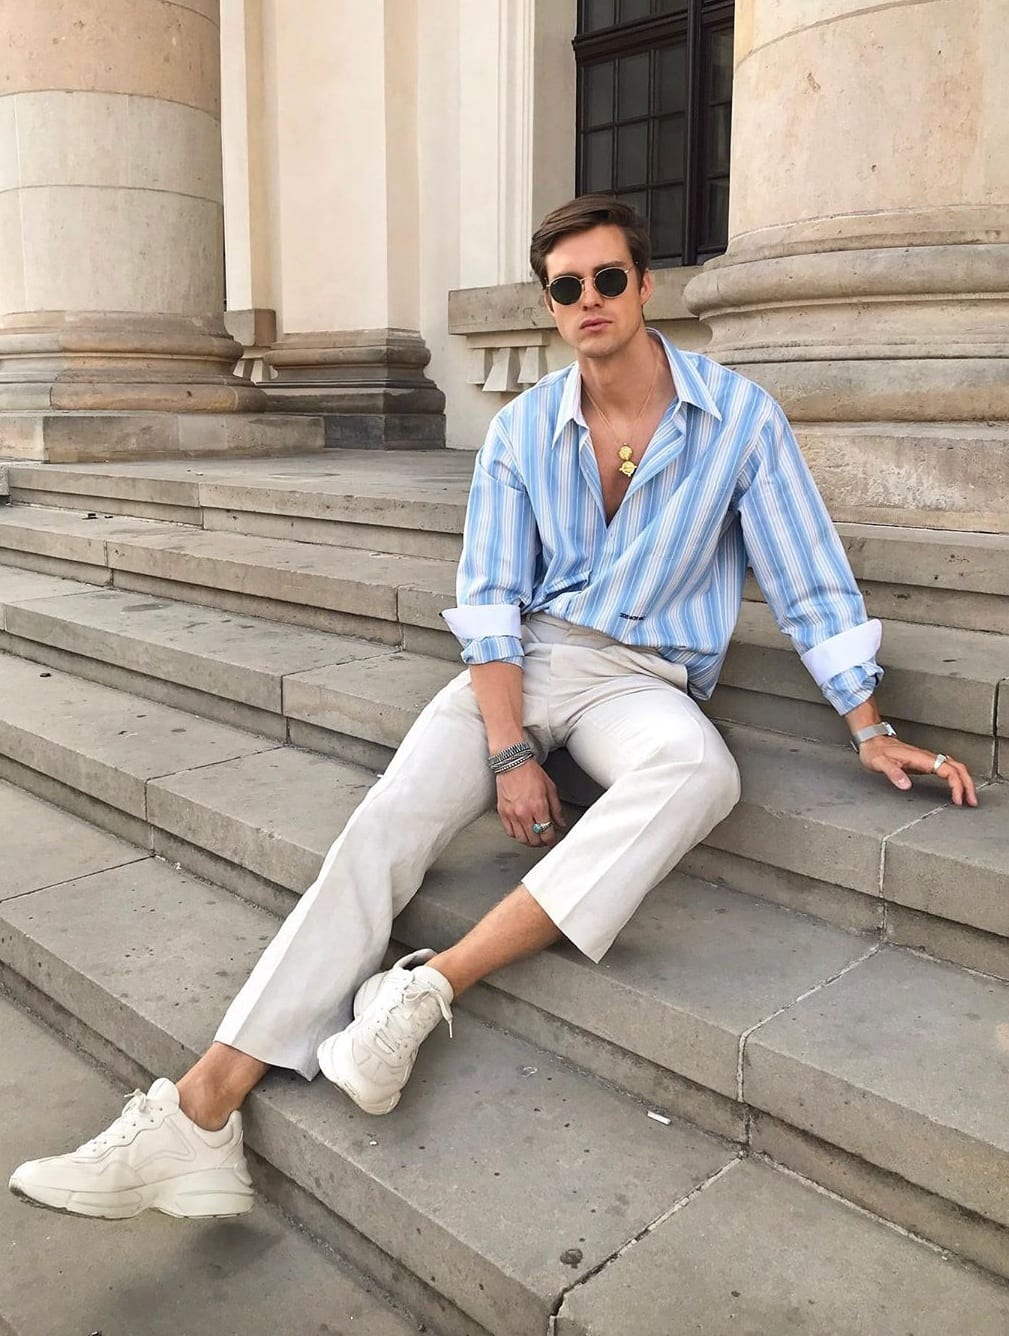 Chunky White Shoes for Men's Street Style